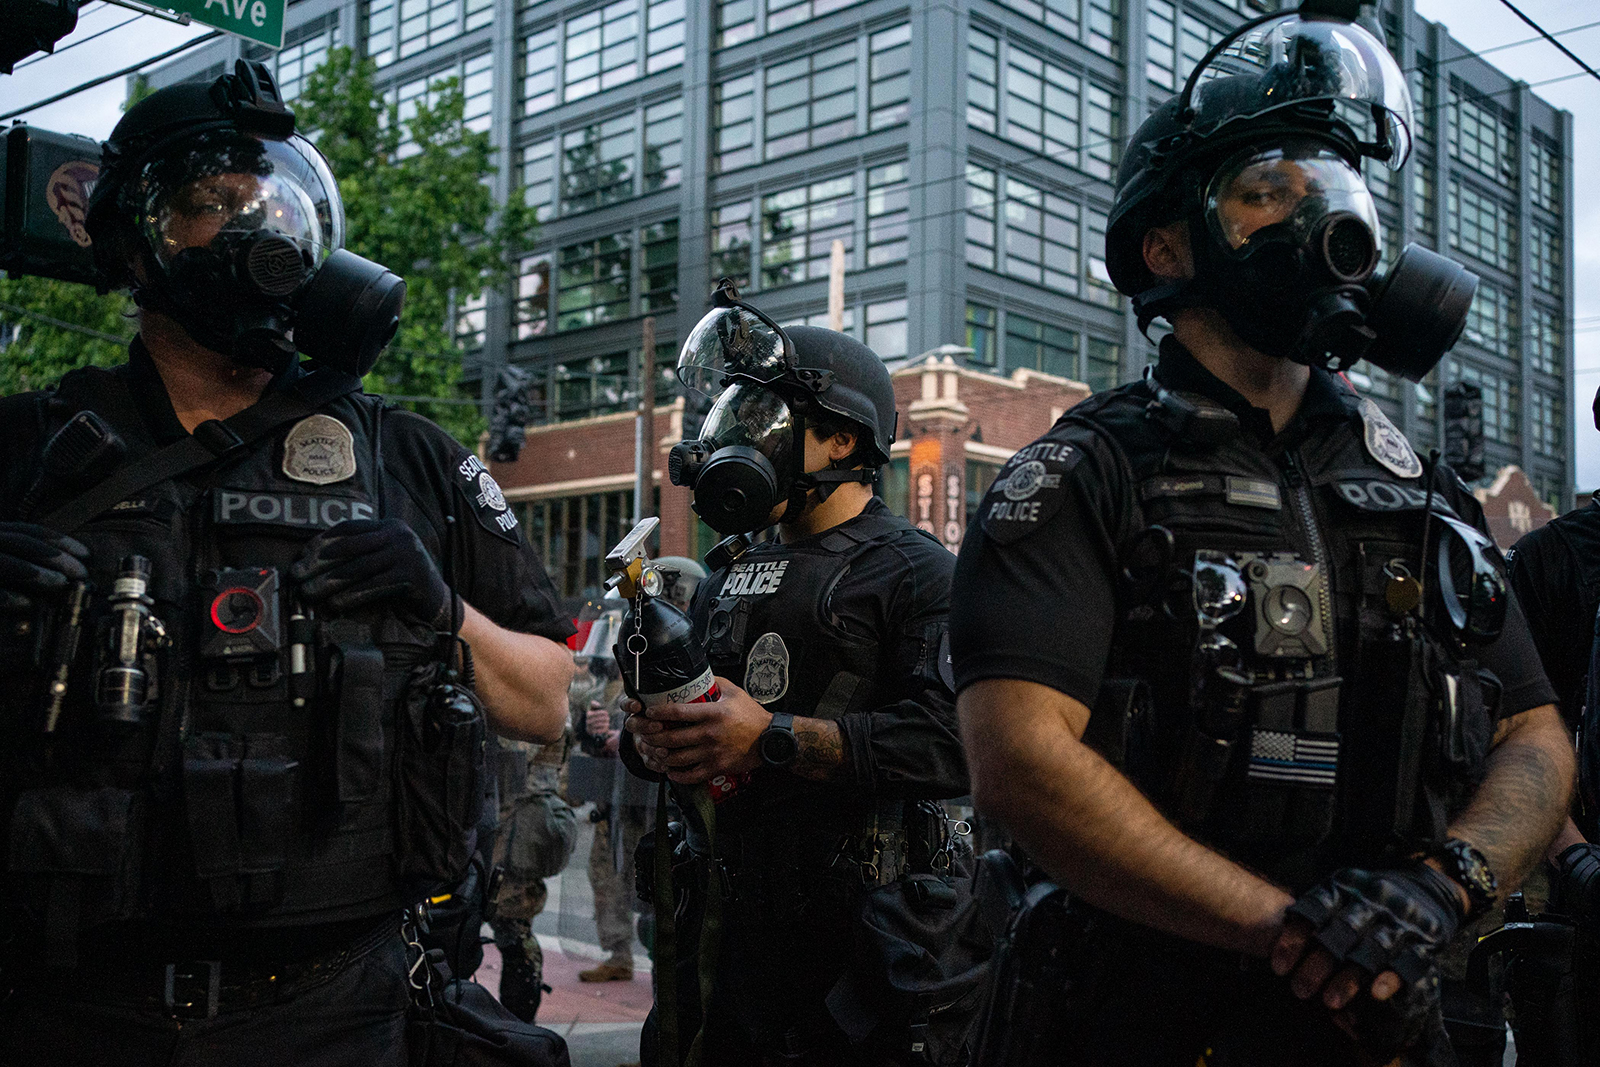 Police officers face off with demonstrators near the Seattle Police Department's East Precinct in Seattle, on June 6.